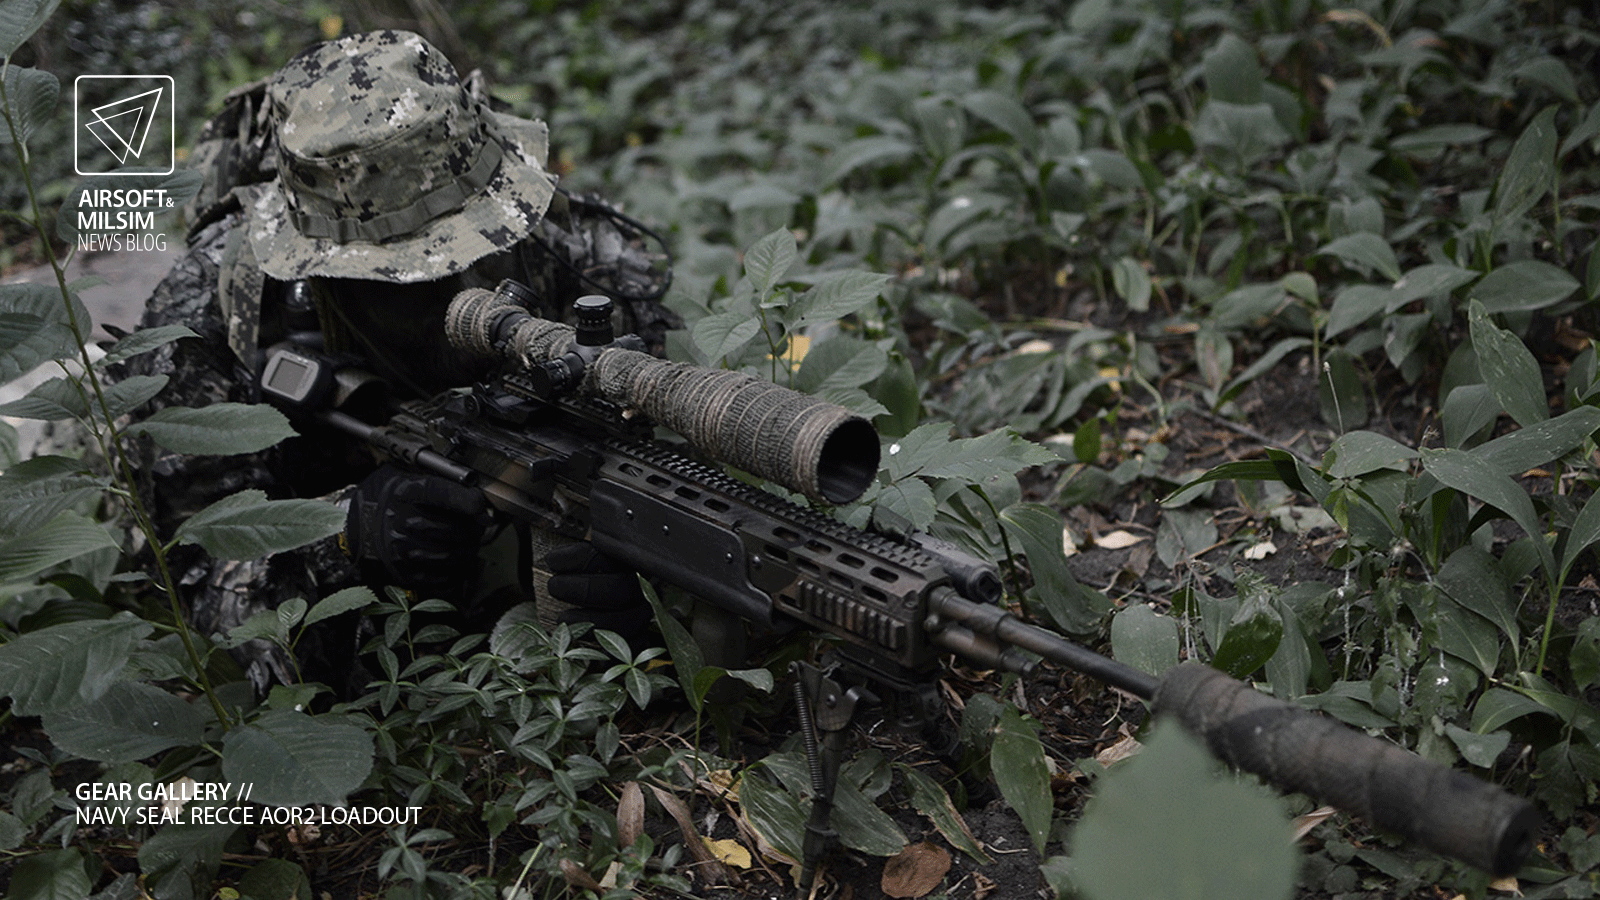 GEAR GALLERY // Navy SEAL RECCE AOR2 inspired loadout